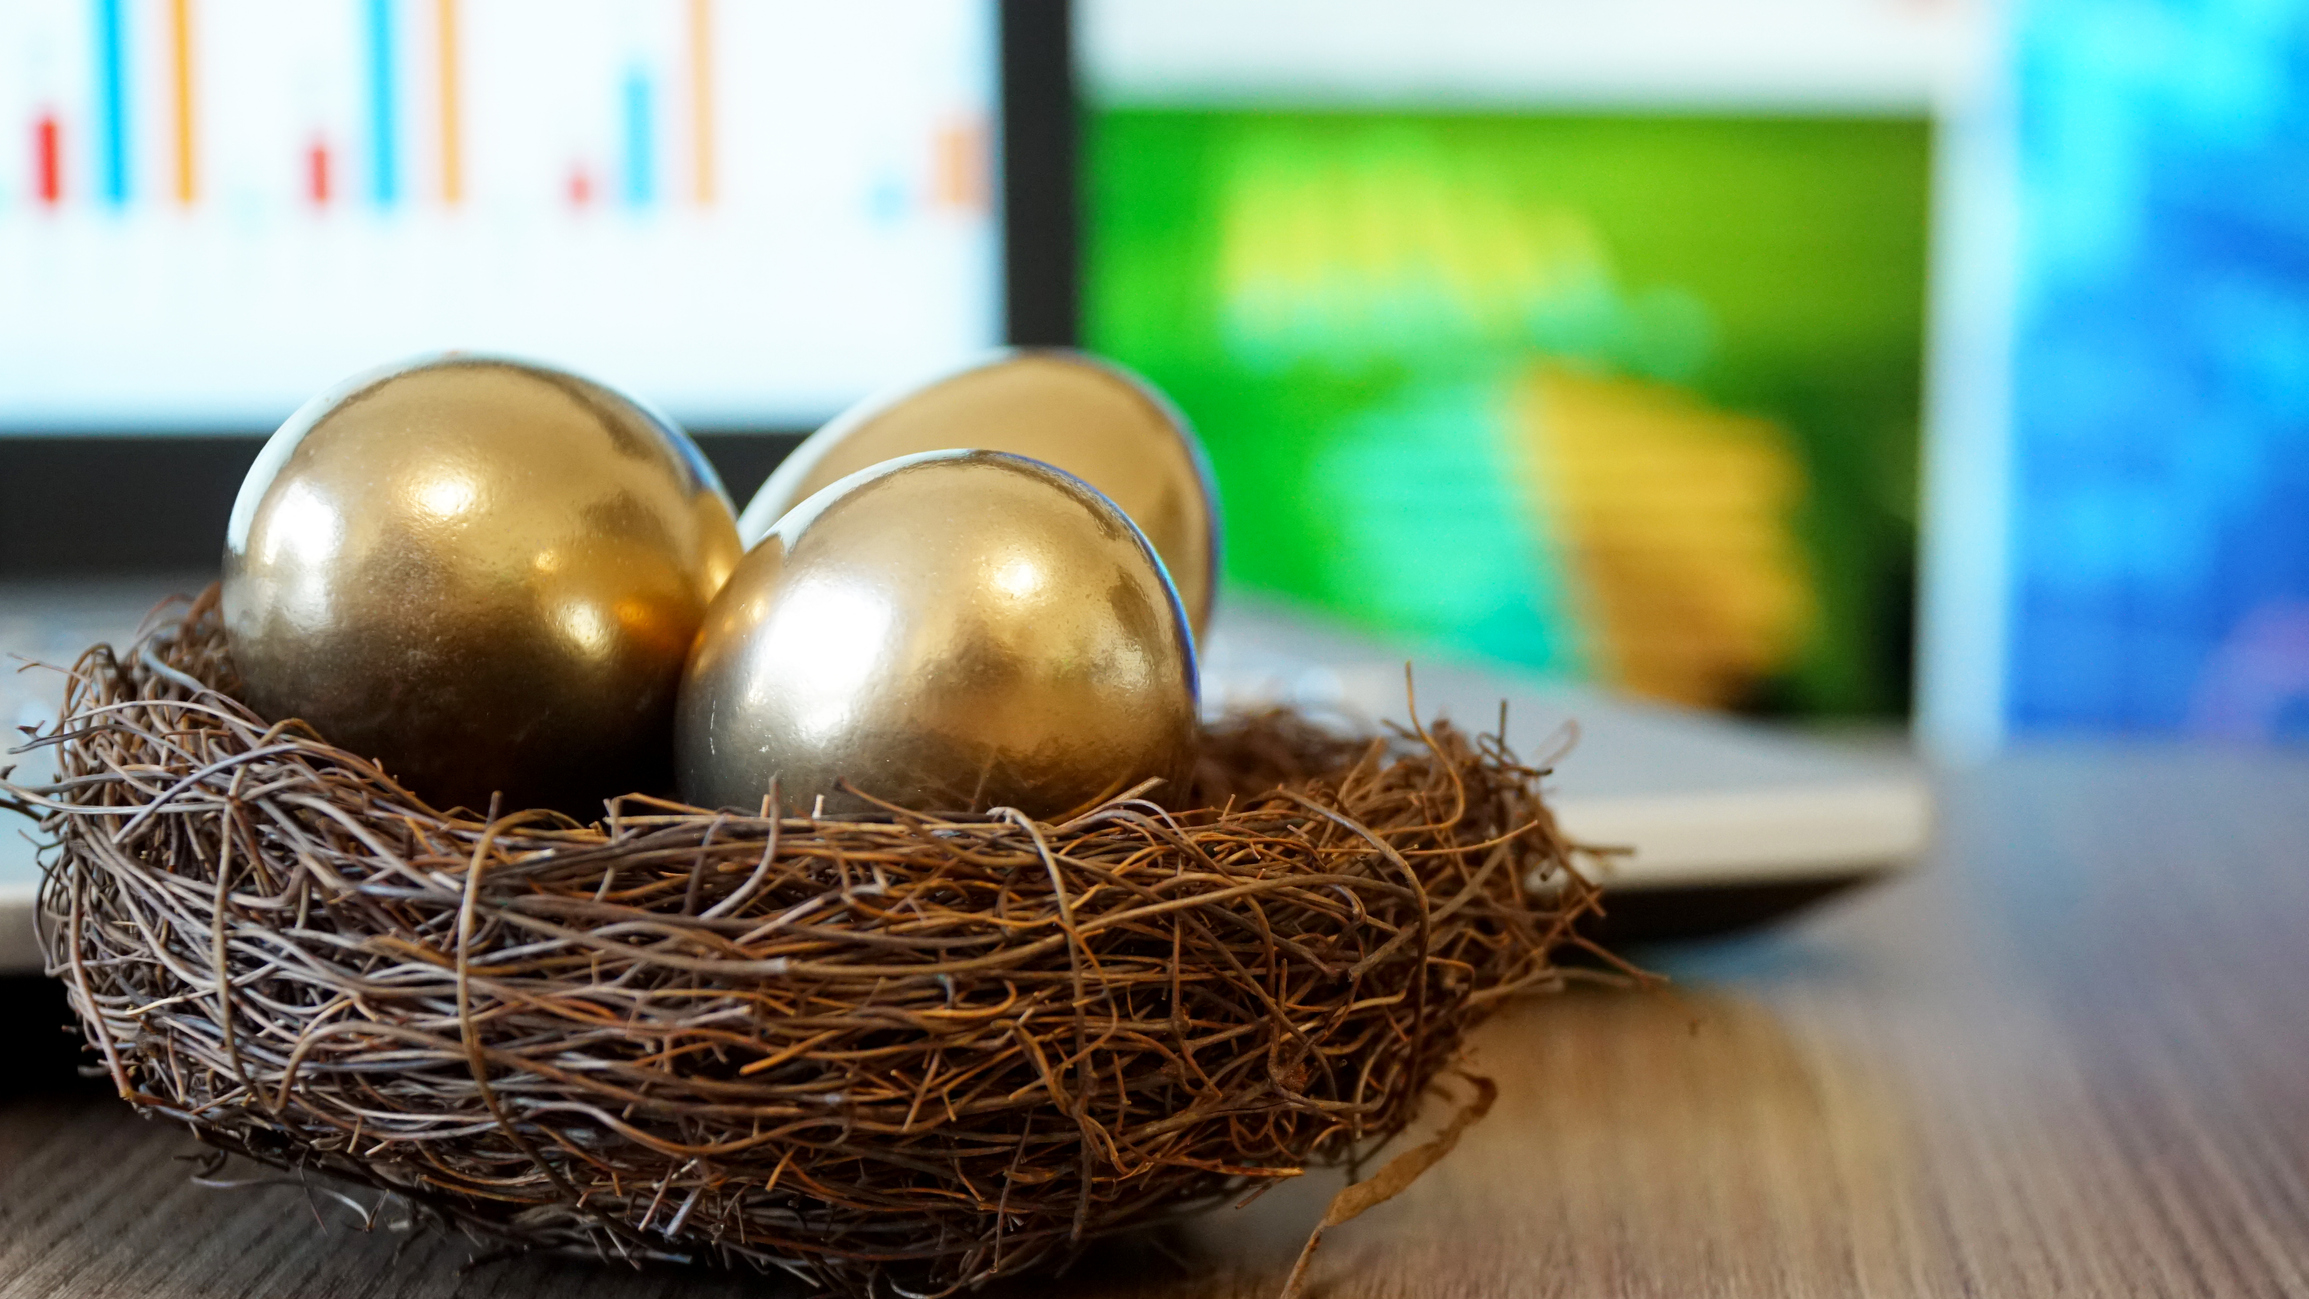 IF YOU ARE LATE STARTING TO SAVE FOR RETIREMENT ... CONSIDER THESE STEPS